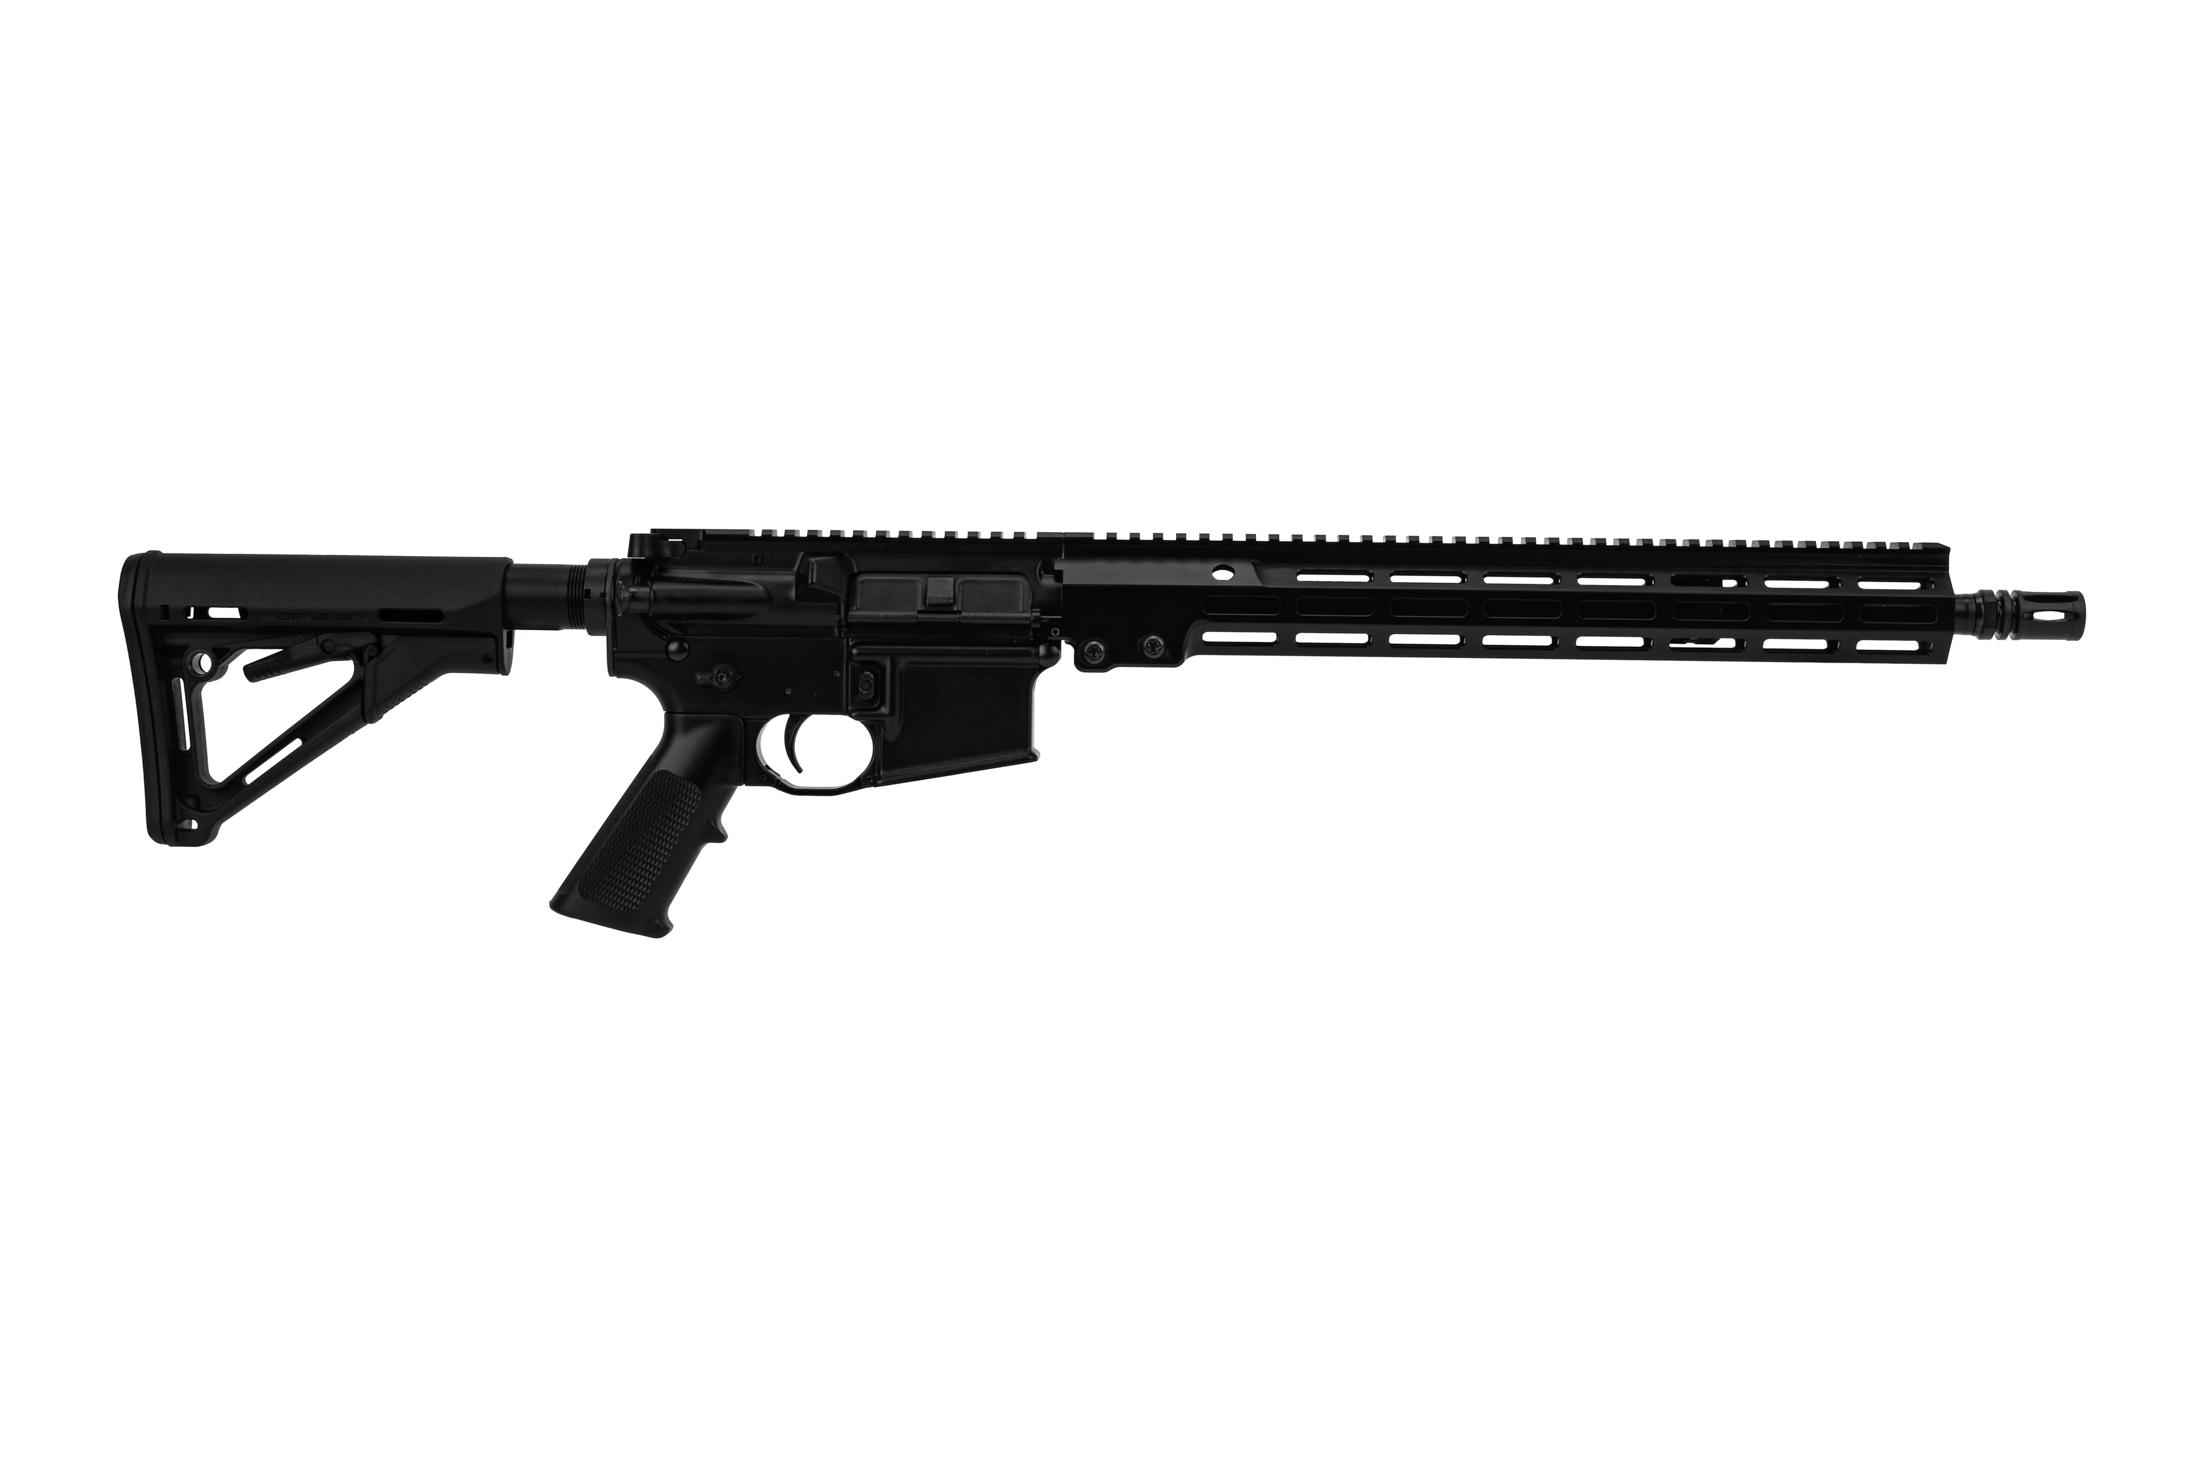 Geissele Super Duty Rifle is chambered in 5.56 and features a 16 inch barrel